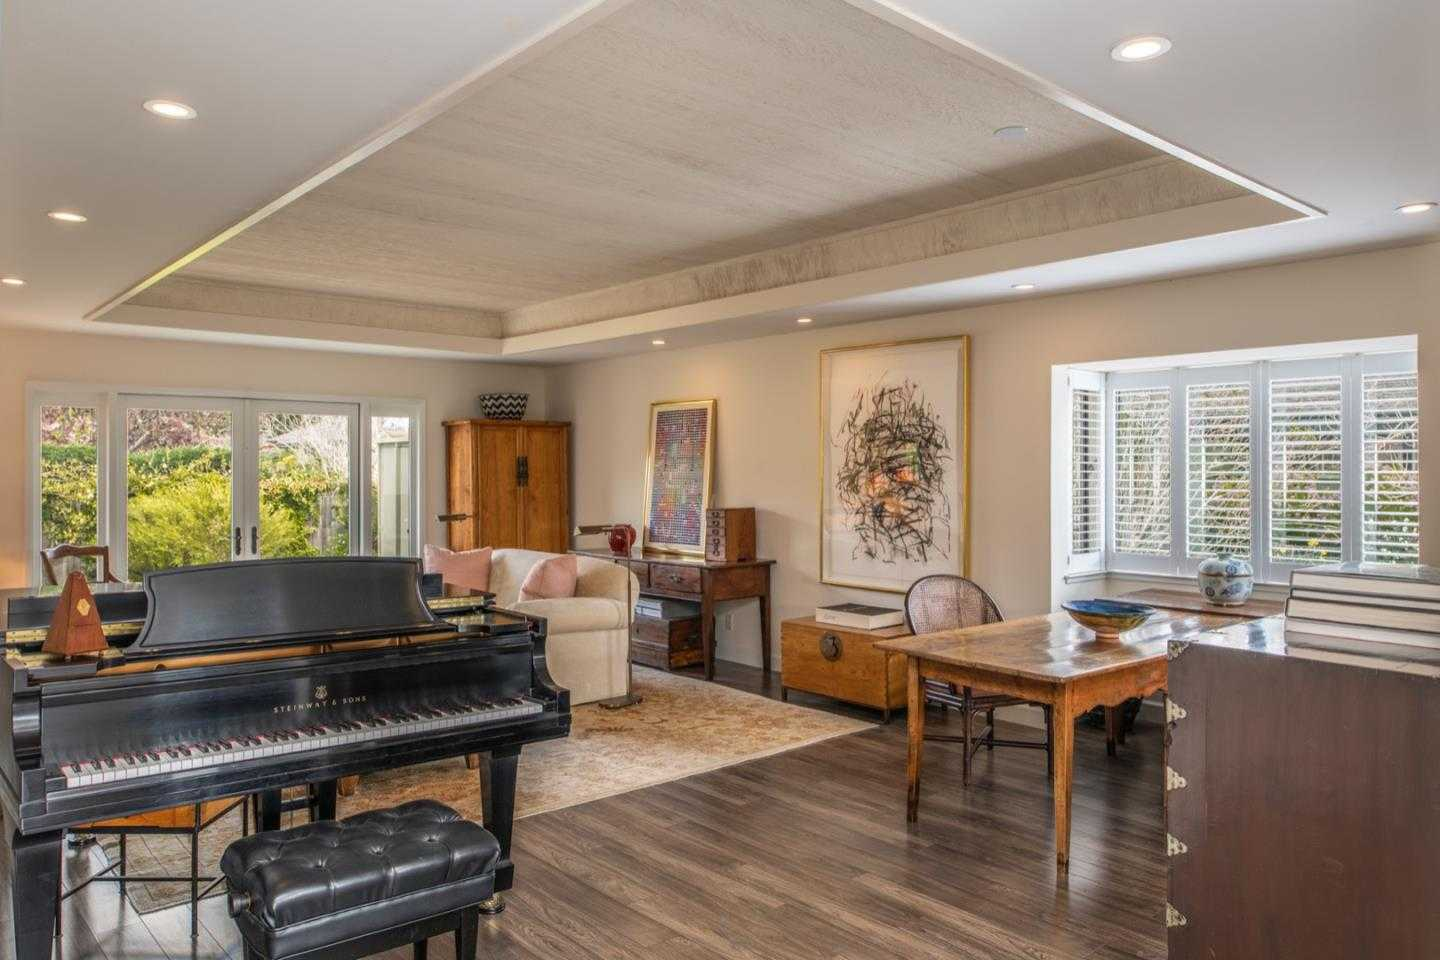 $795,000 - 2Br/2Ba -  for Sale in Carmel